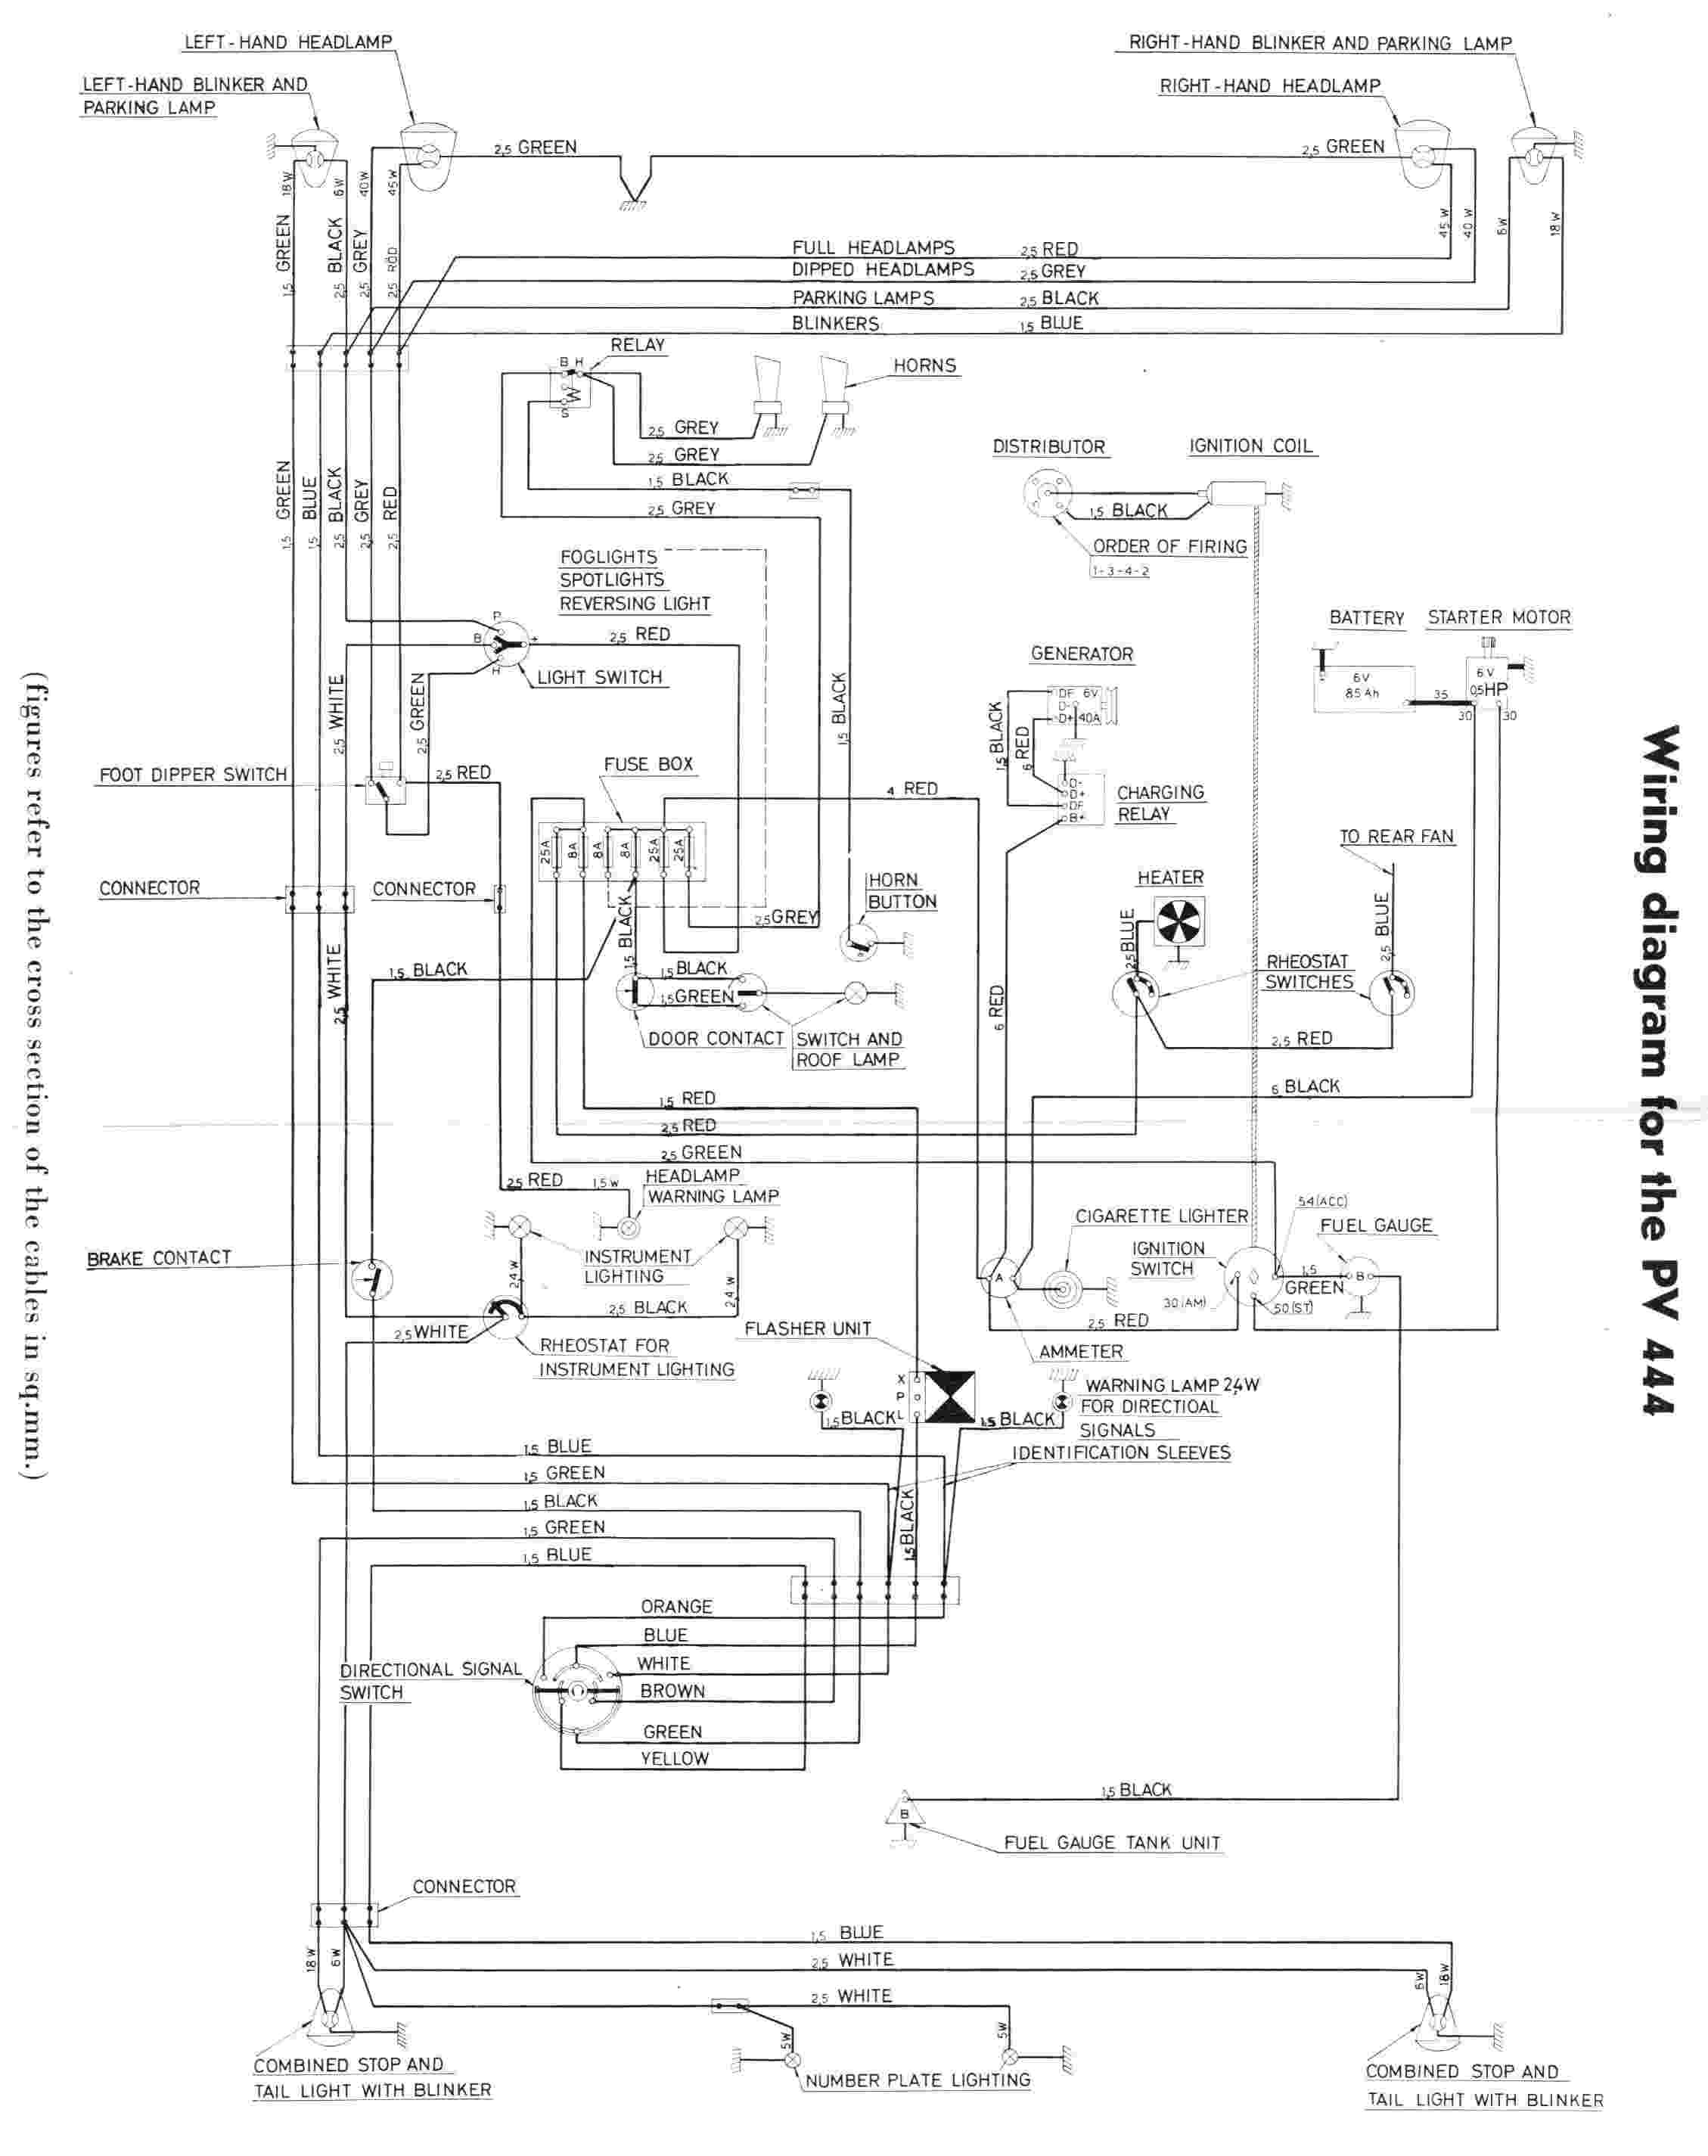 small resolution of volvo truck electrical diagram trusted wiring diagram online volvo transmission schematic 1993 volvo wiring schematic battery